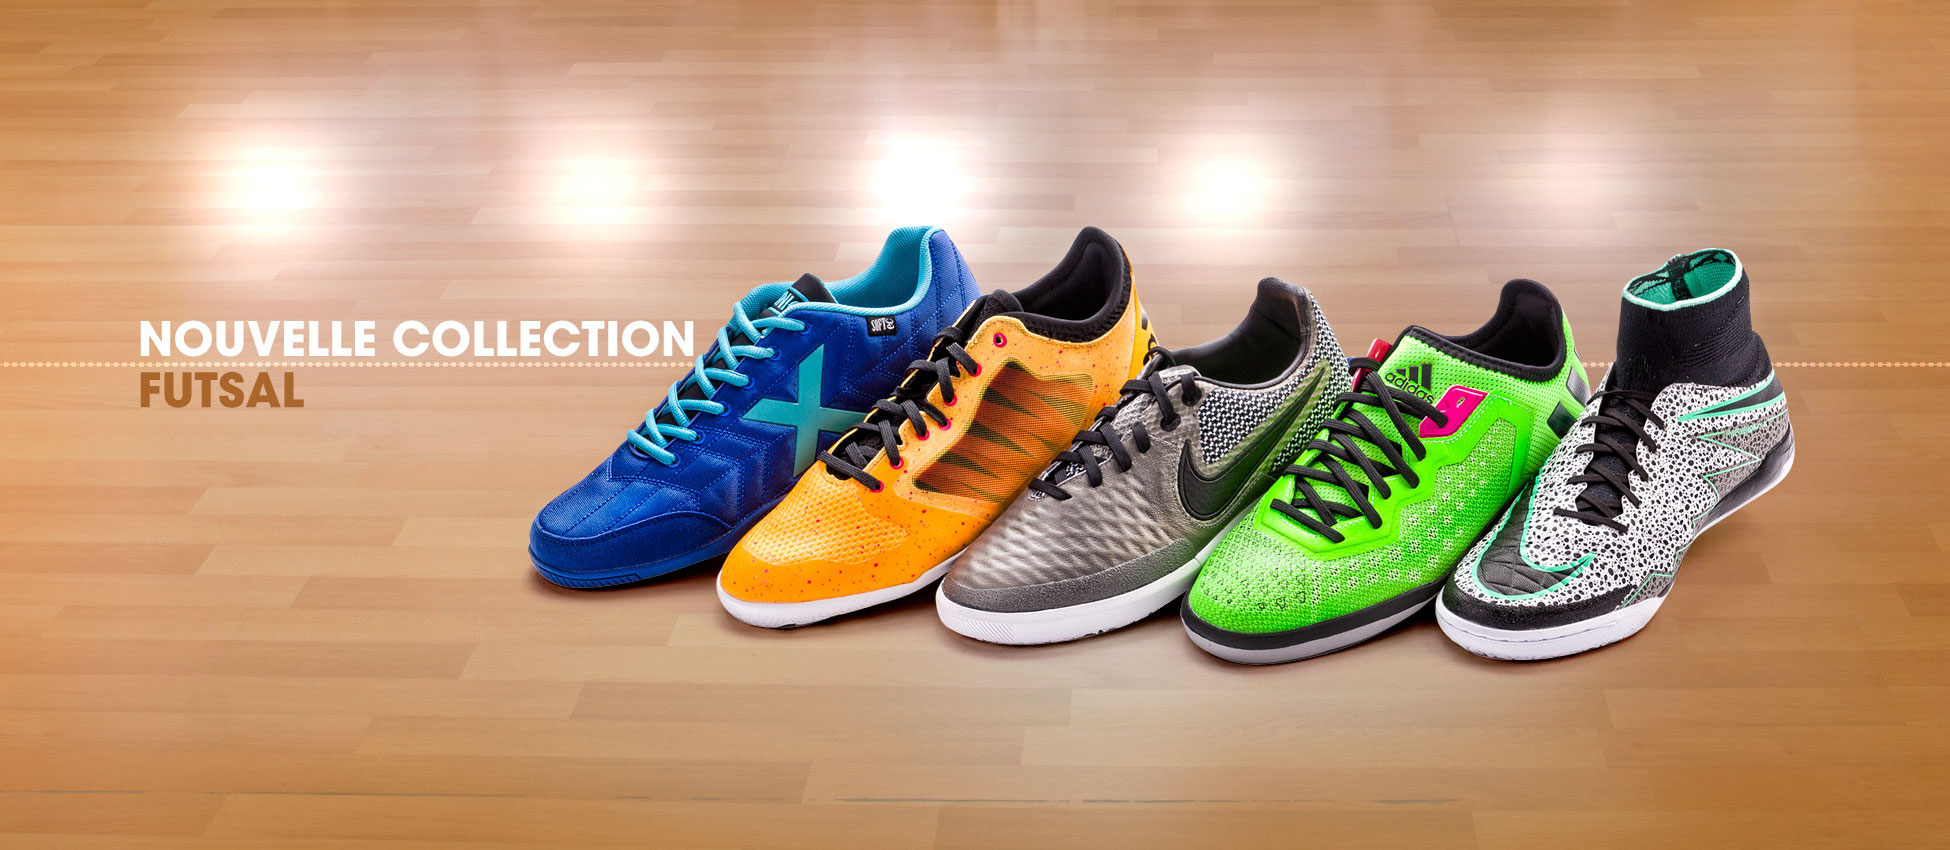 Nouvelle Collection Futsal 2016